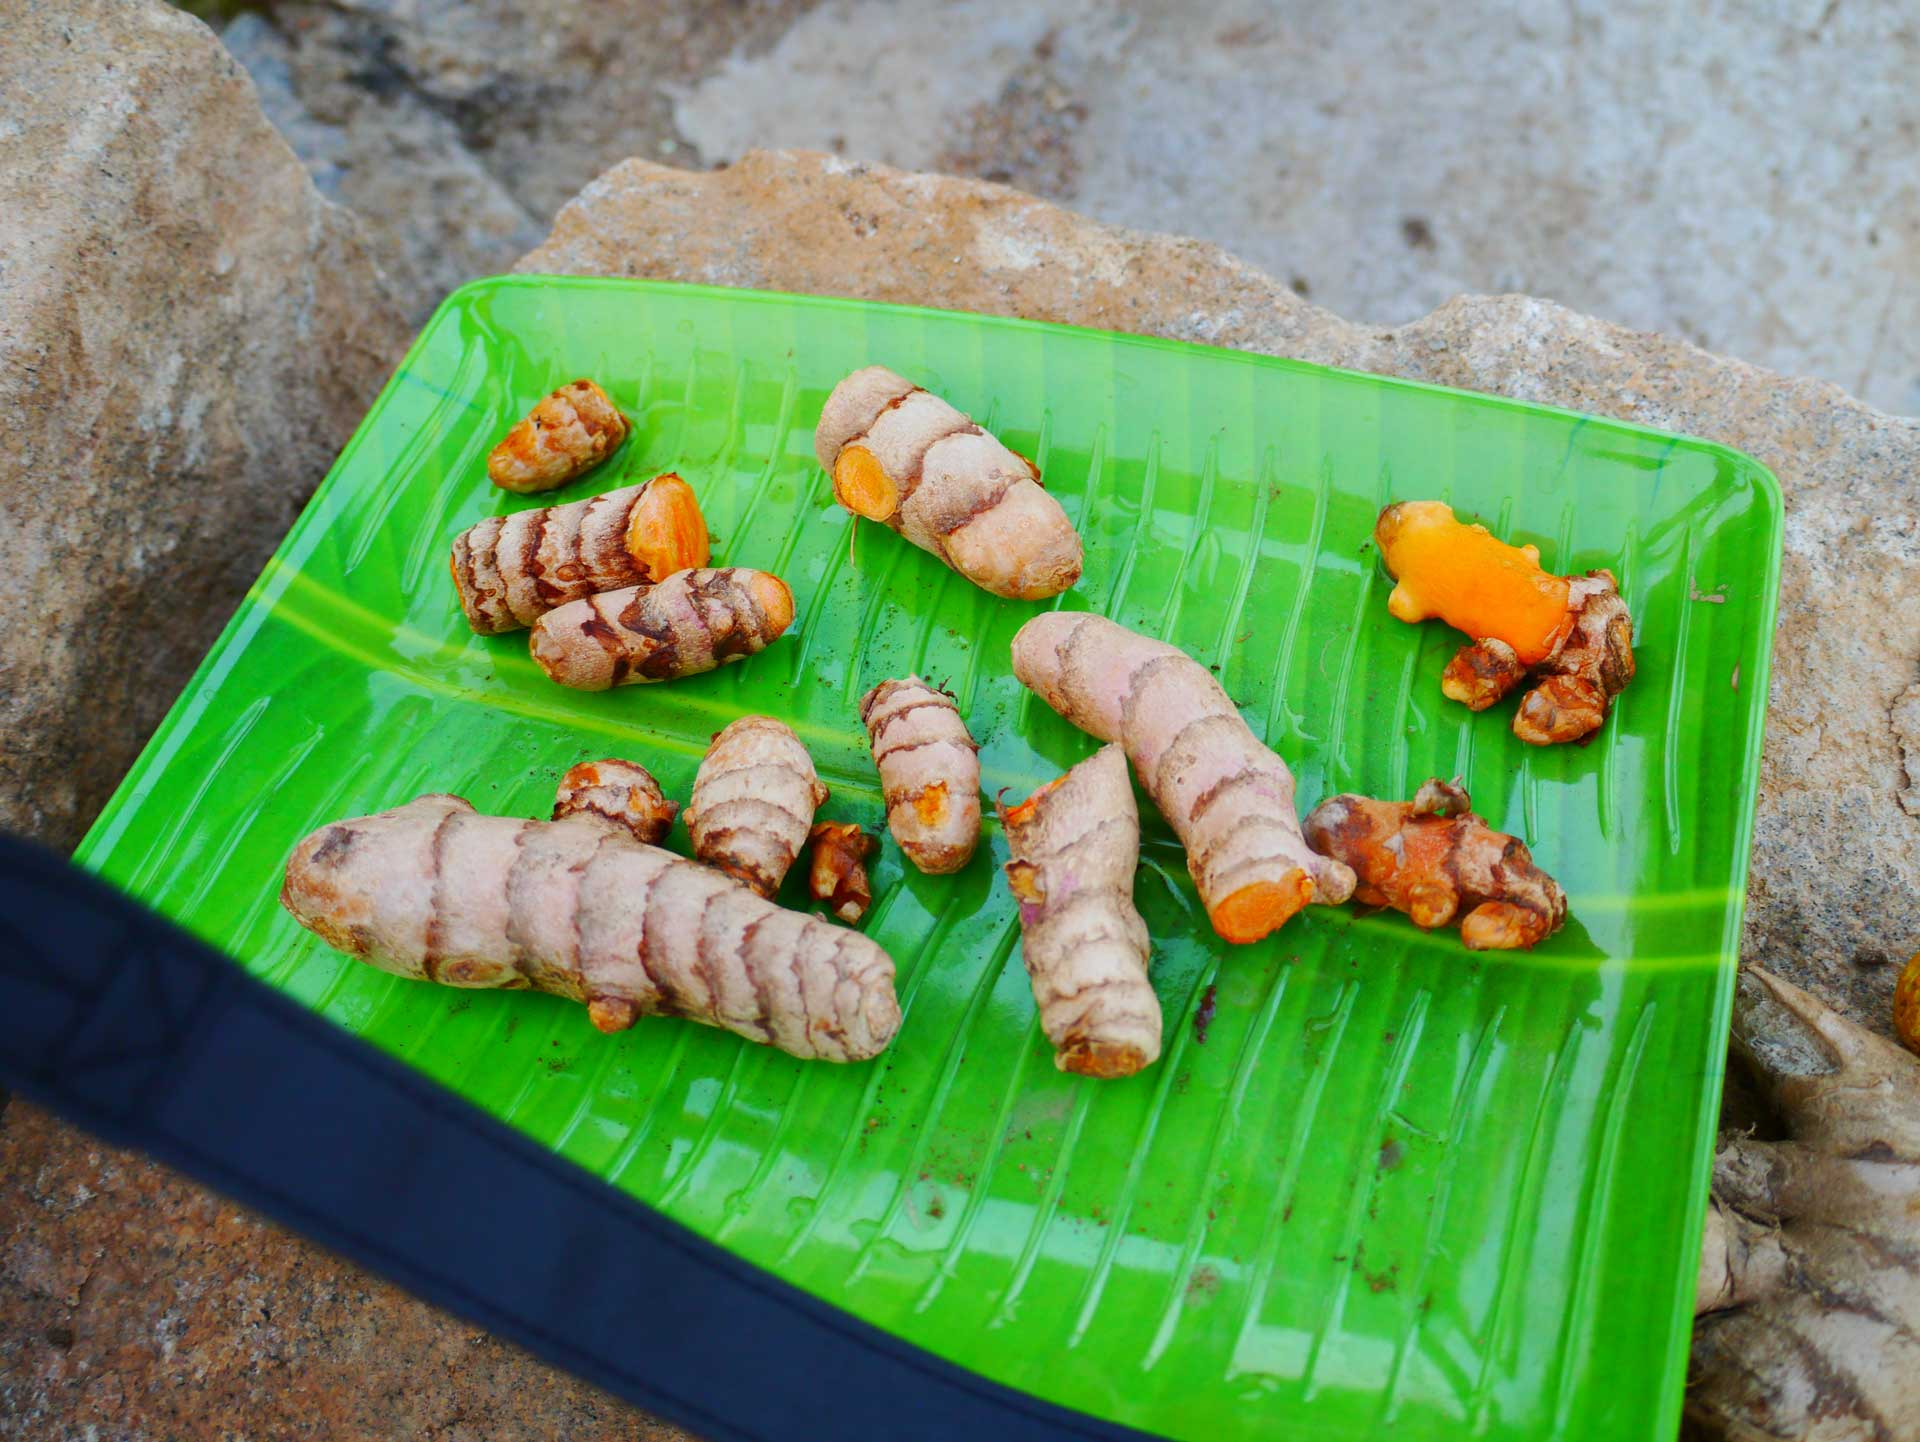 Turmeric samples from the farm. © Applied Food Sciences, Inc.